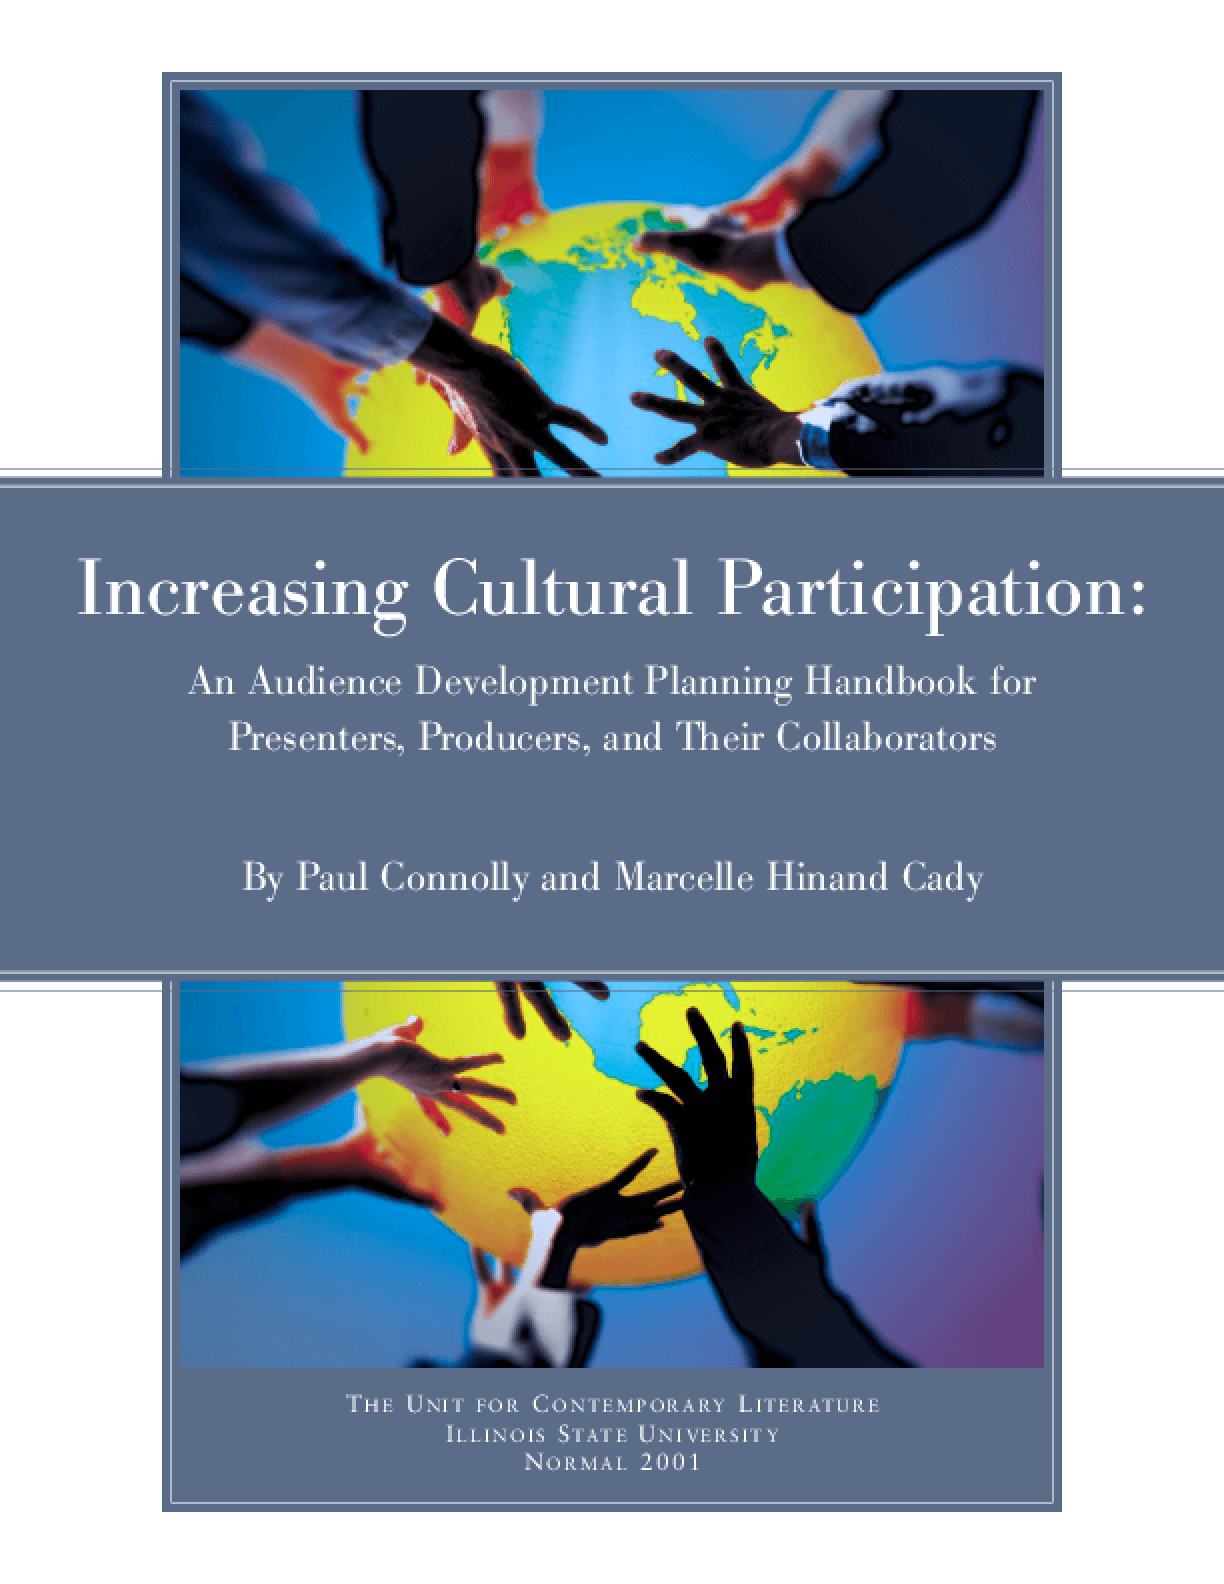 Increasing Cultural Participation: An Audience Development Planning Handbook for Presenters, Producers and Their Collaborators